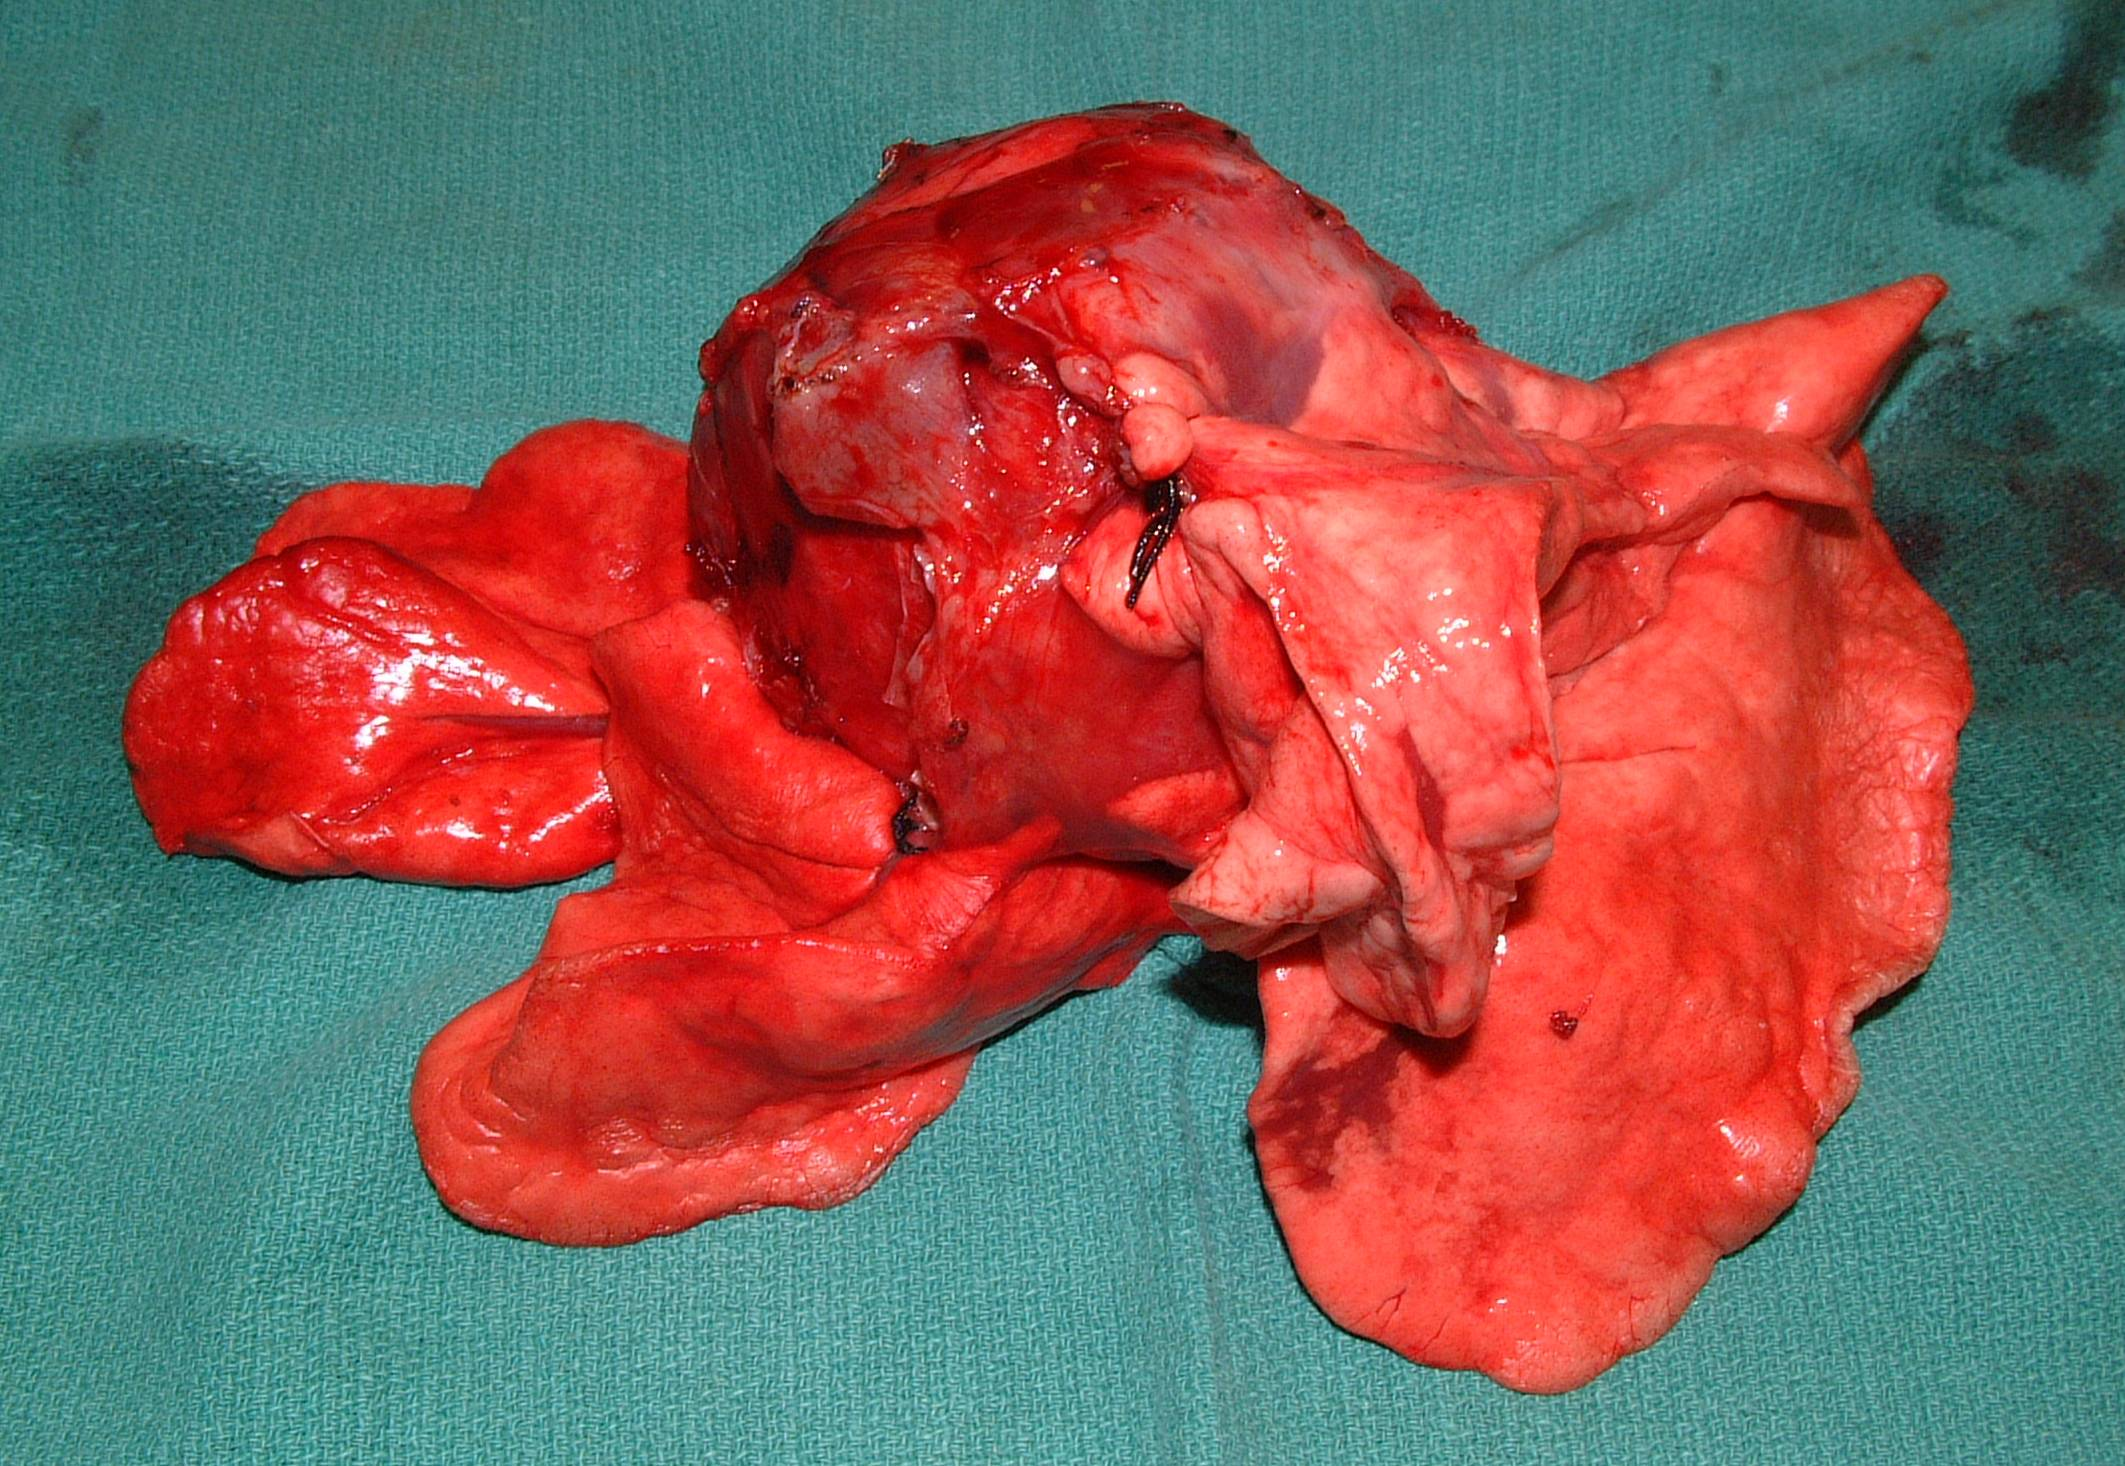 Primary Lung SCC - Dog